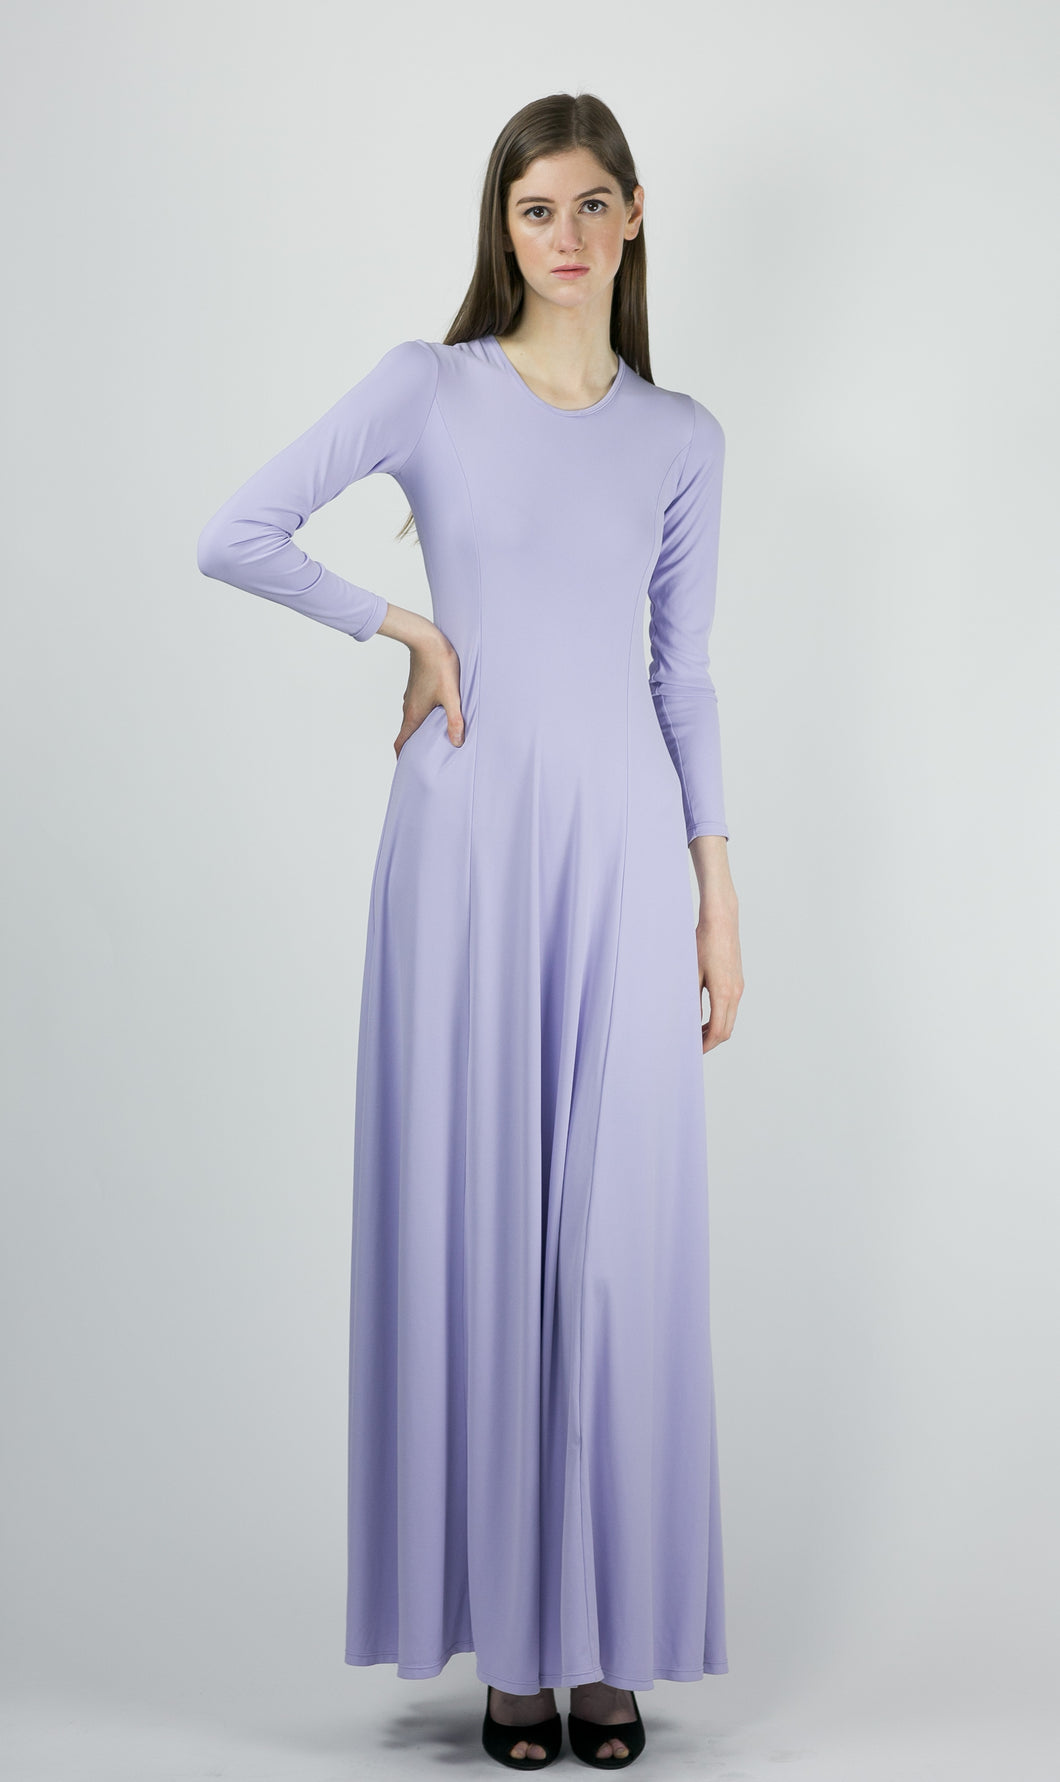 THE Ultimate Dress - LILAC